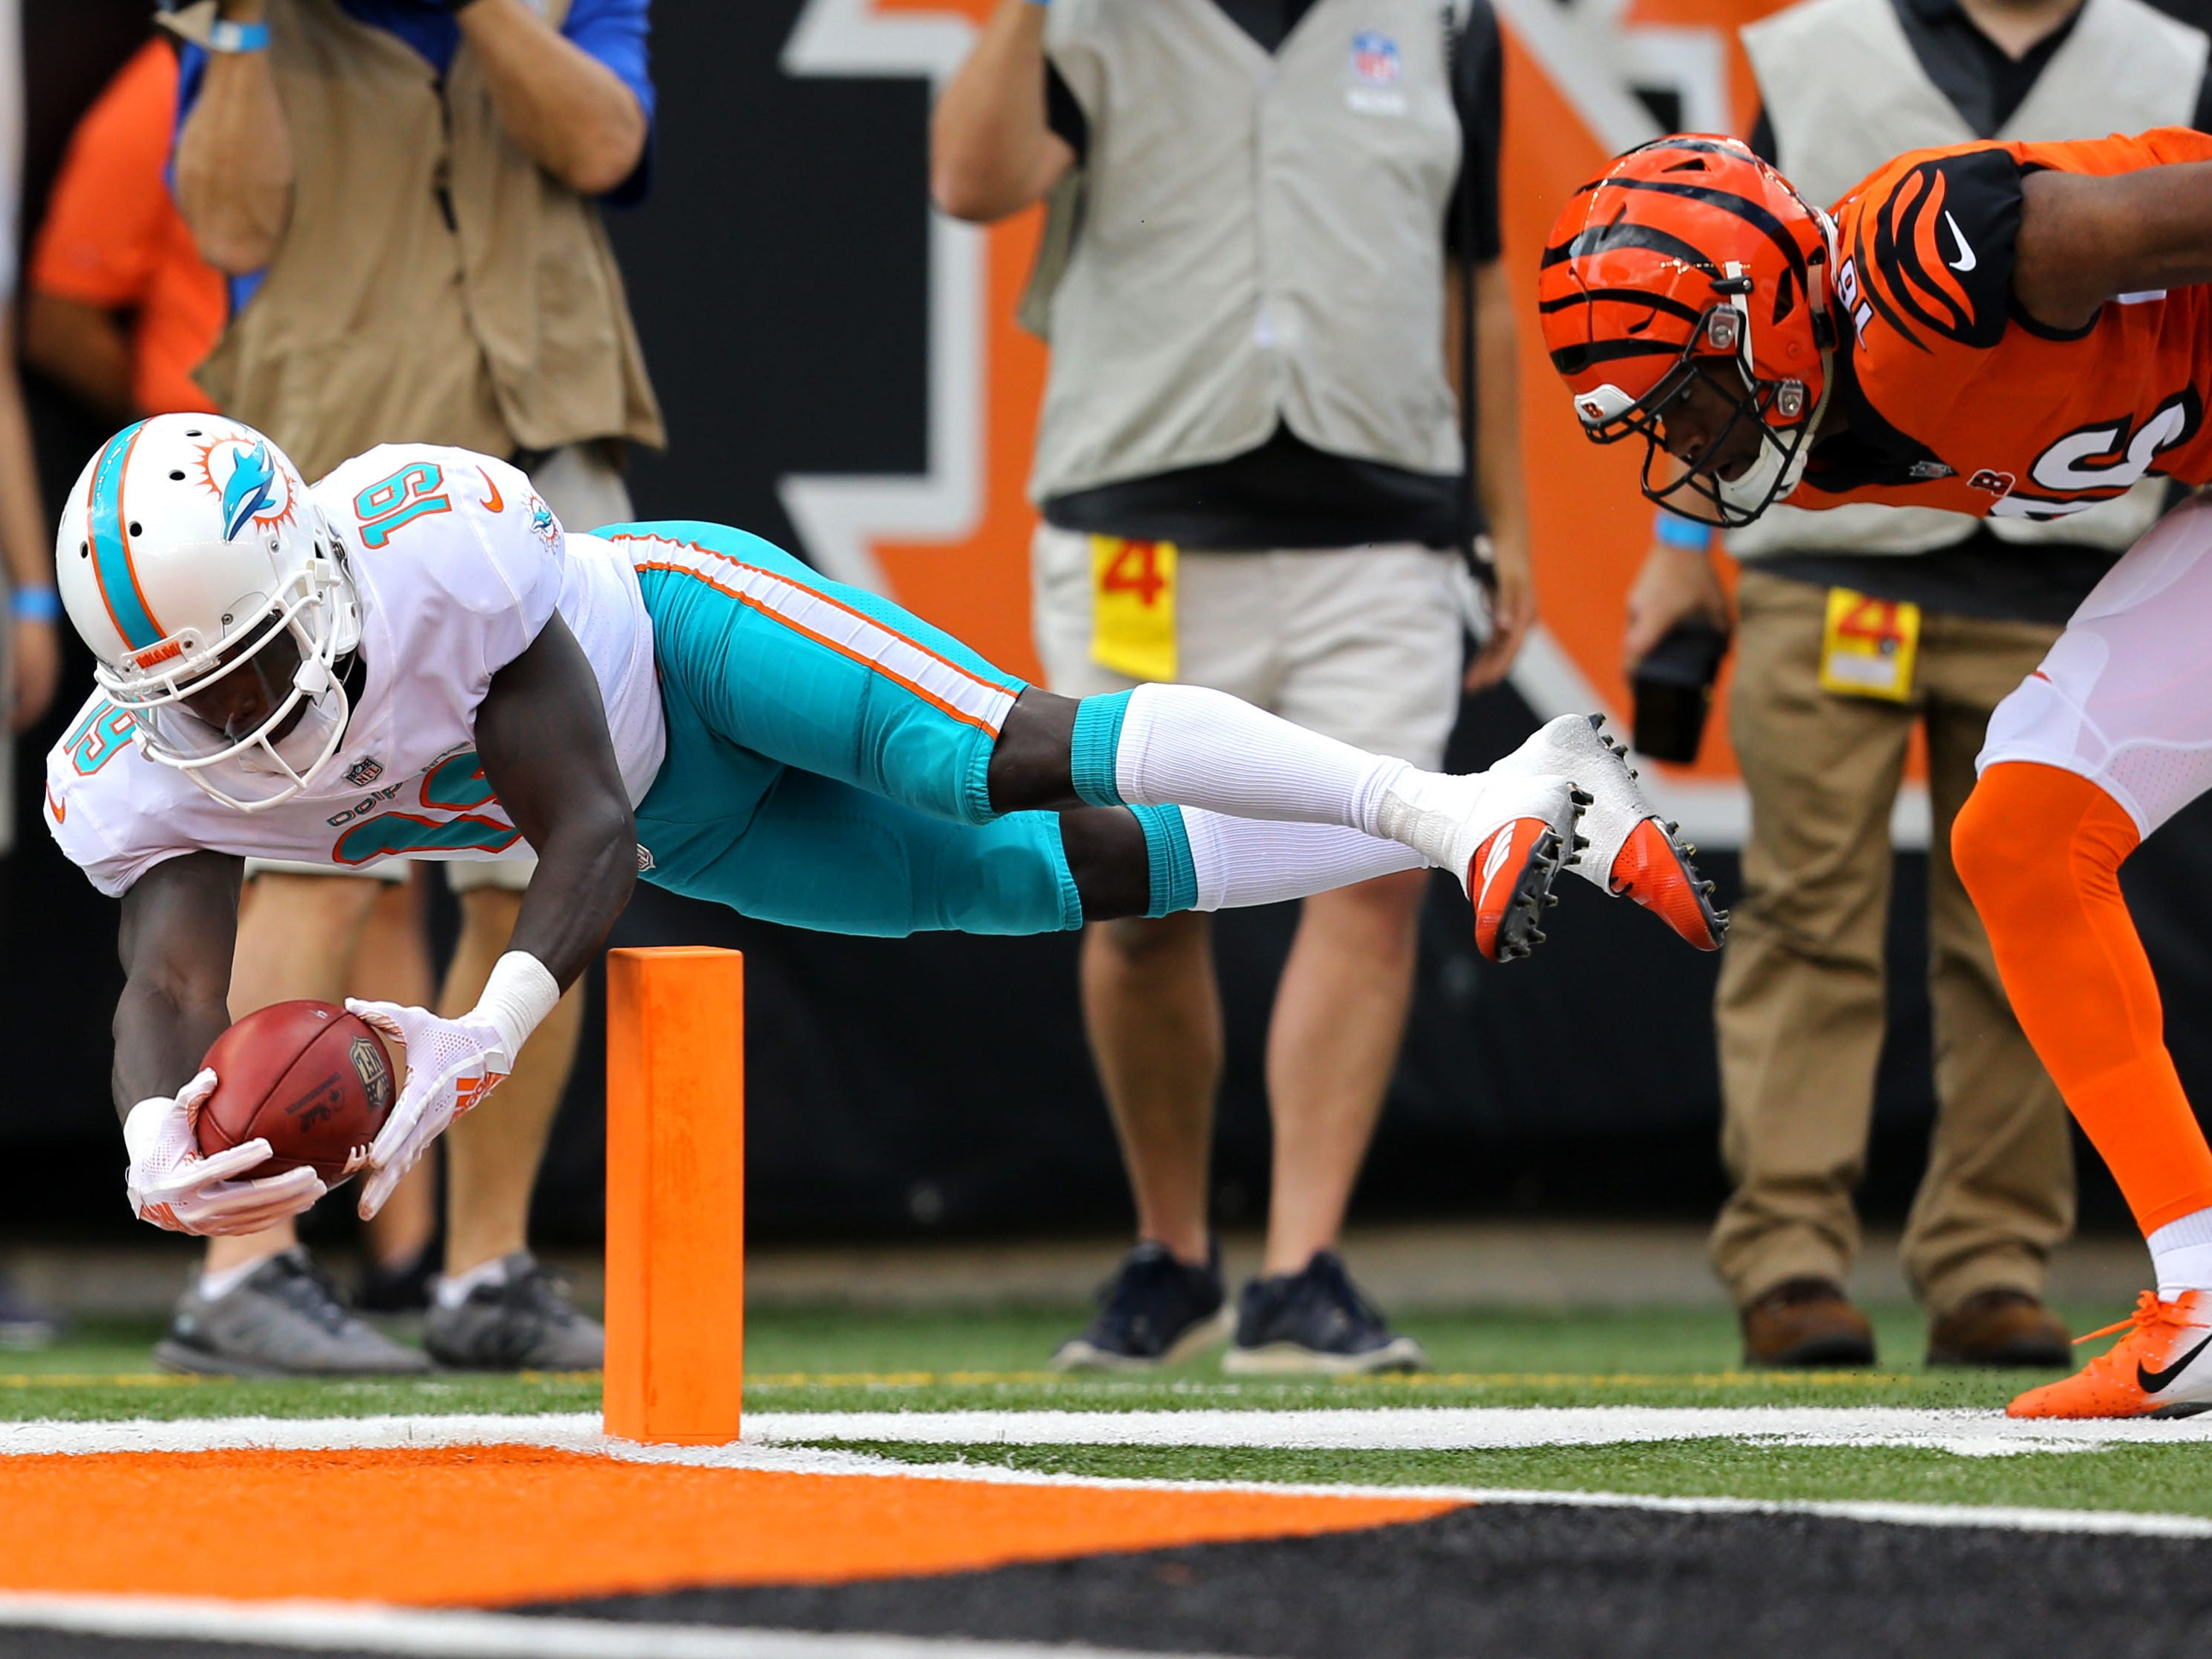 16. Dolphins (18): How much is offense struggling? Miami has more TDs on kick returns (both by Jakeem Grant) than on ground (one by Kenyan Drake in Week 2).